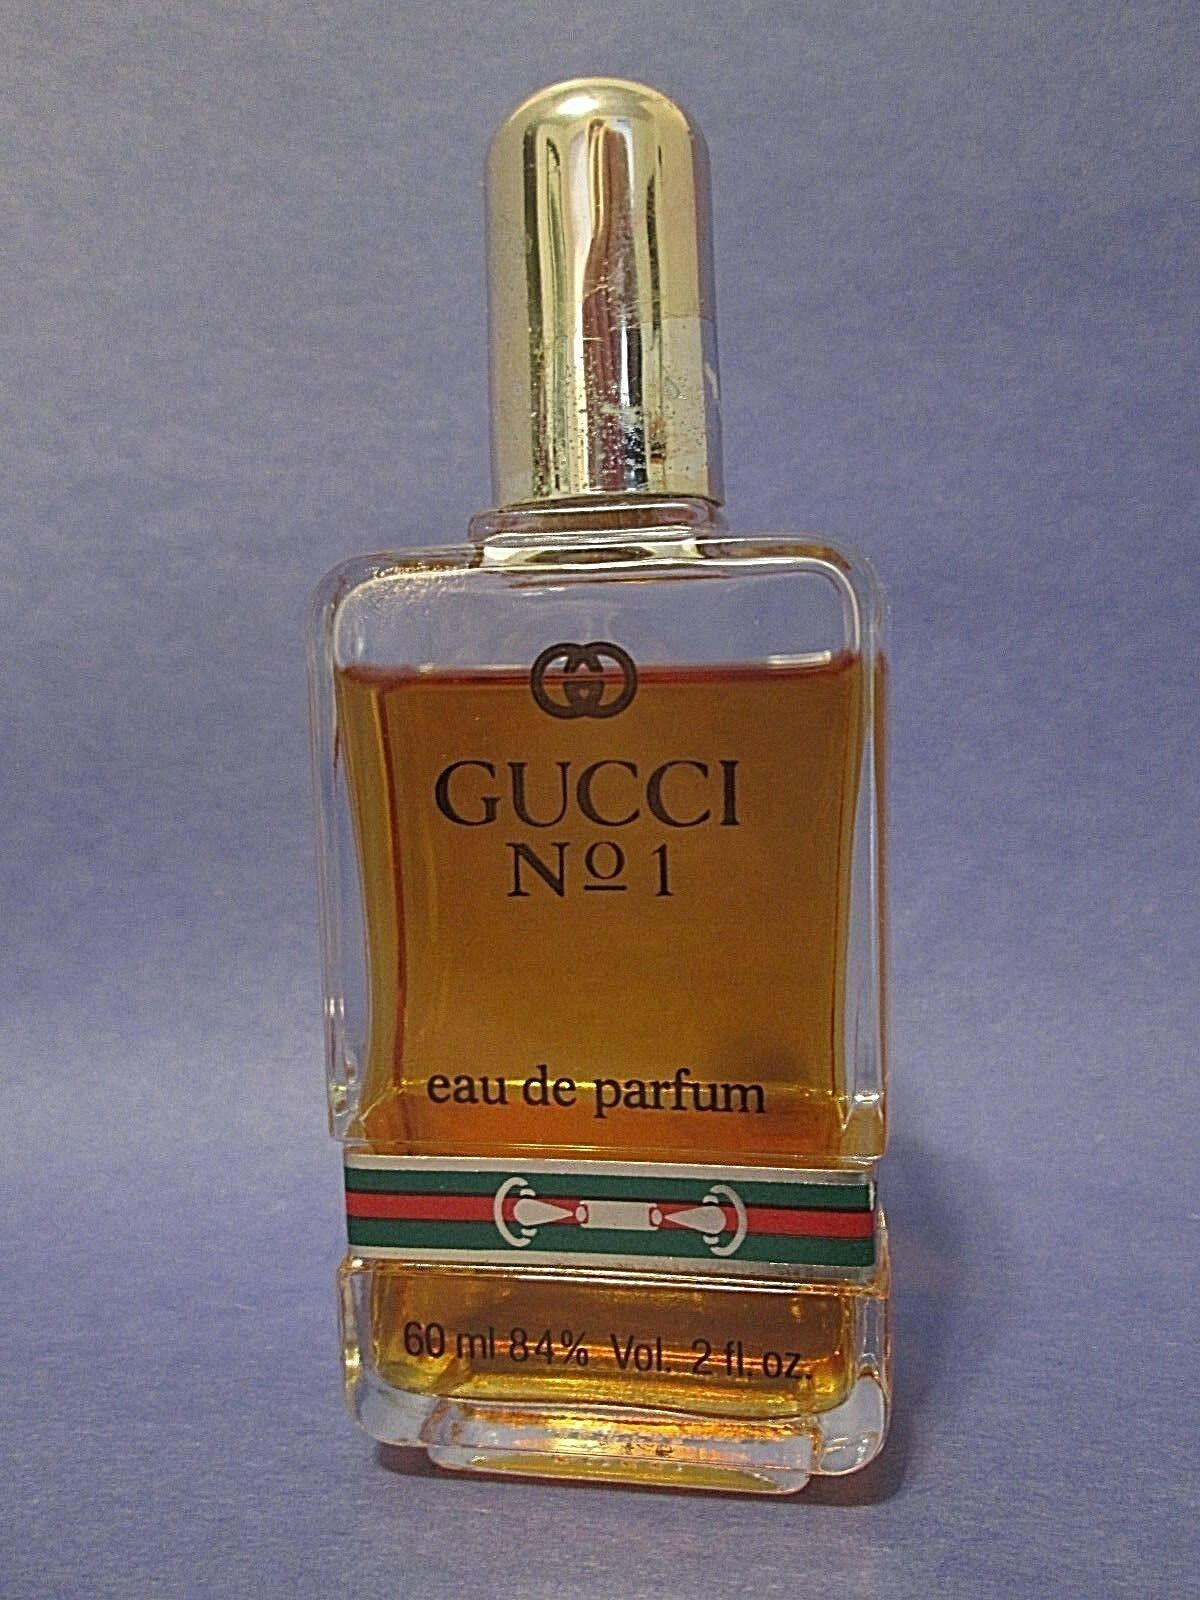 Raiders Of The Lost Scent How To Recognize Gucci Perfumes